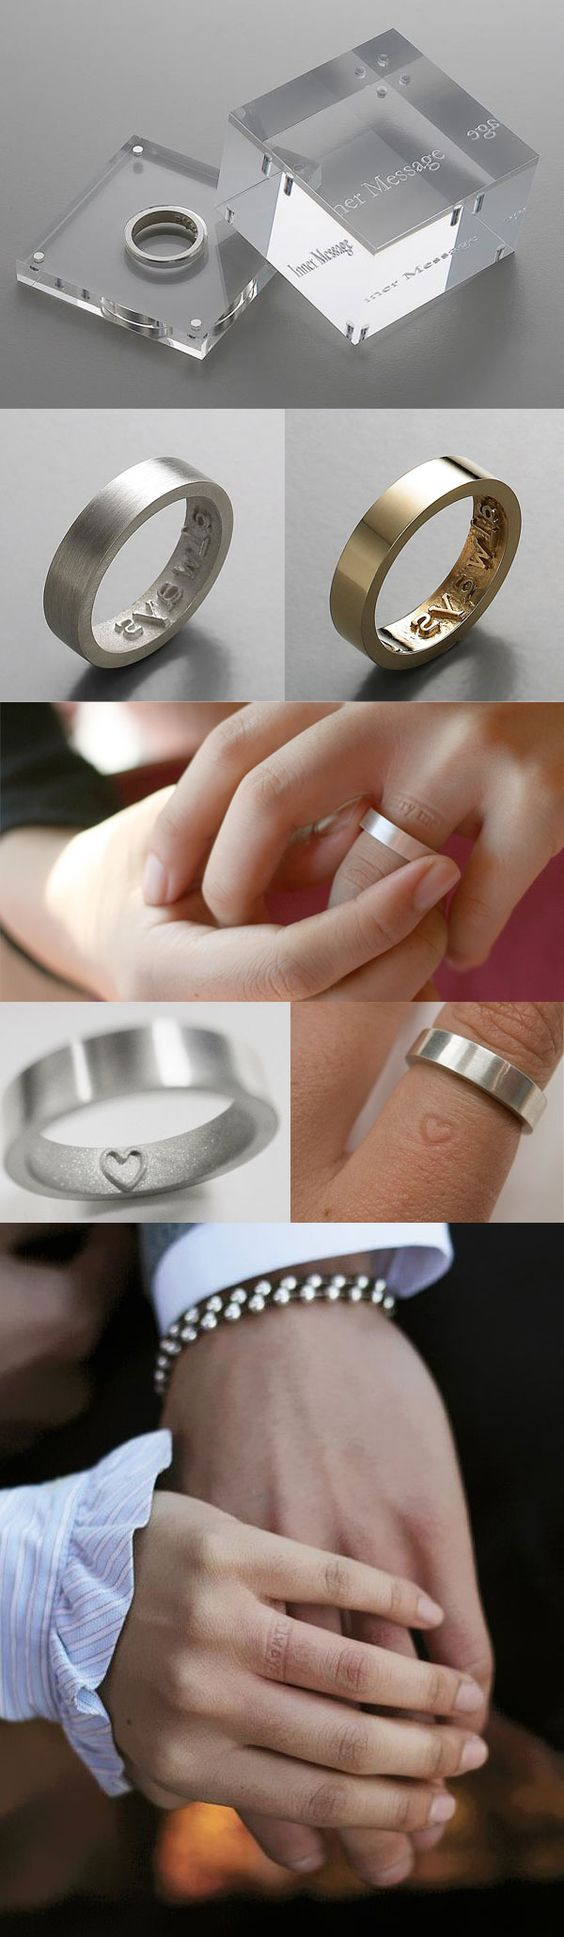 Yoon Jung Yun wedding/engagement rings. Awesome hidden message that gets imprinted onto your finger!